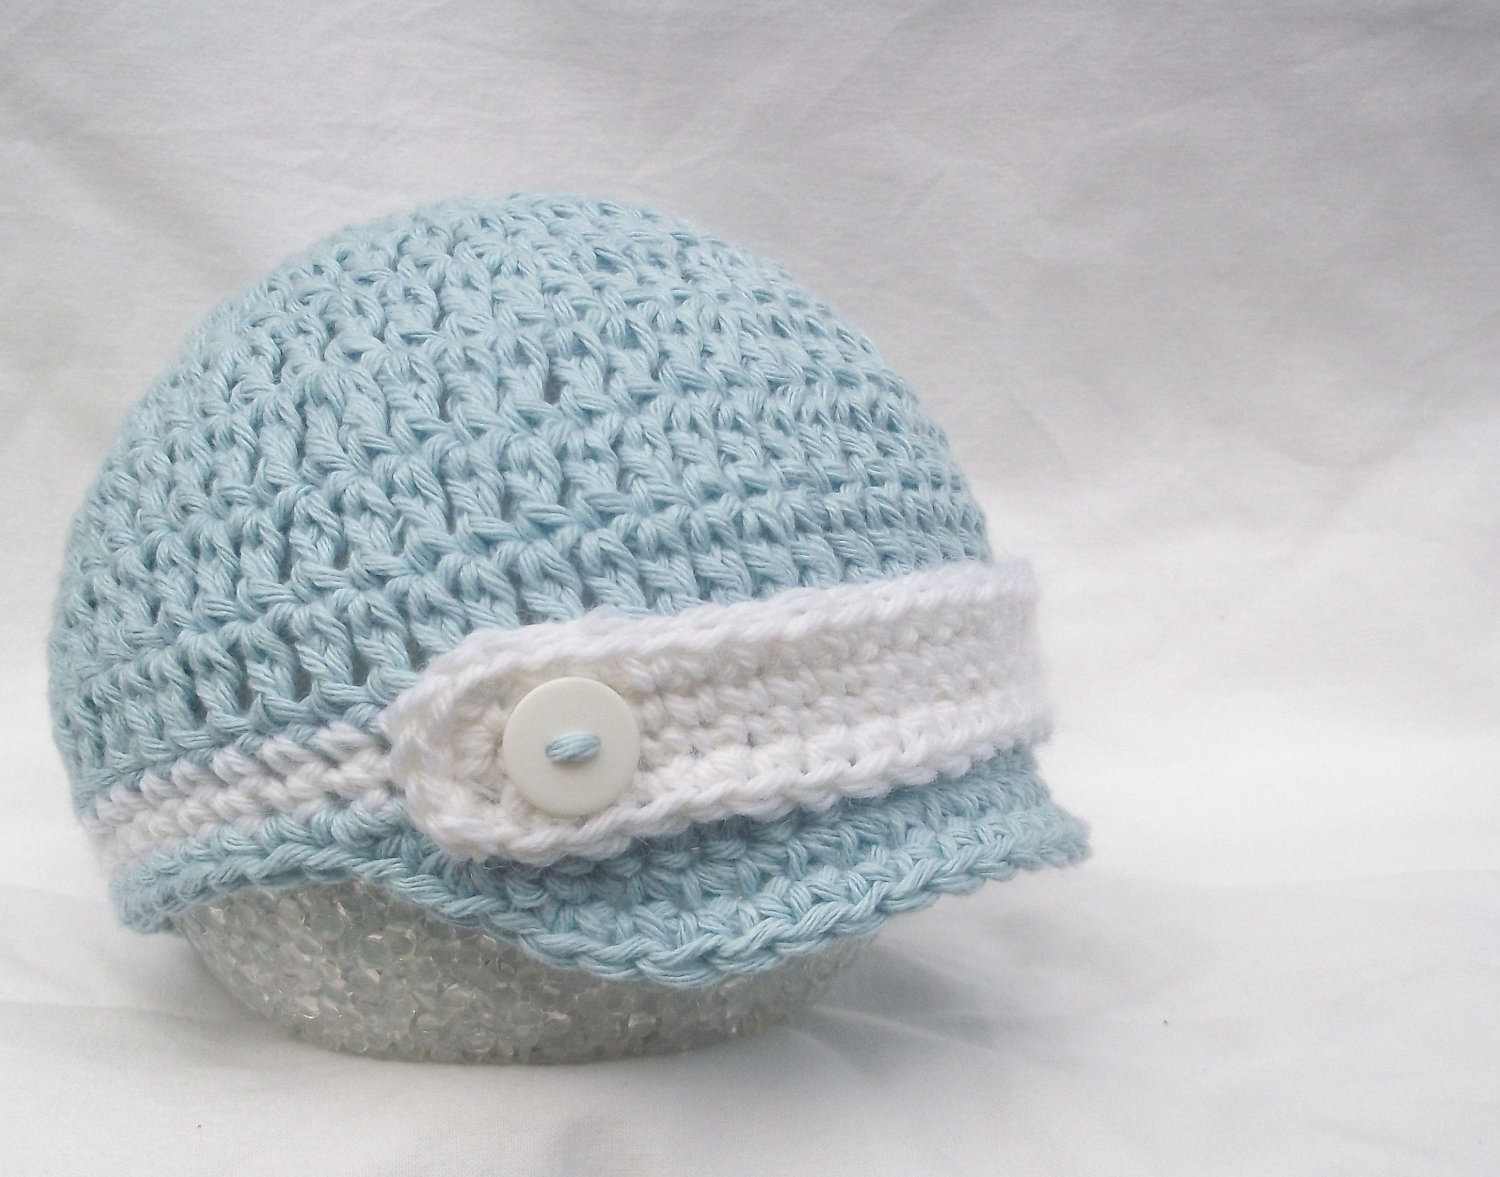 Crochet Newborn Hats : Baby hat - Crochet baby hat - Newborn baby hat- Crochet baby boy hat ...